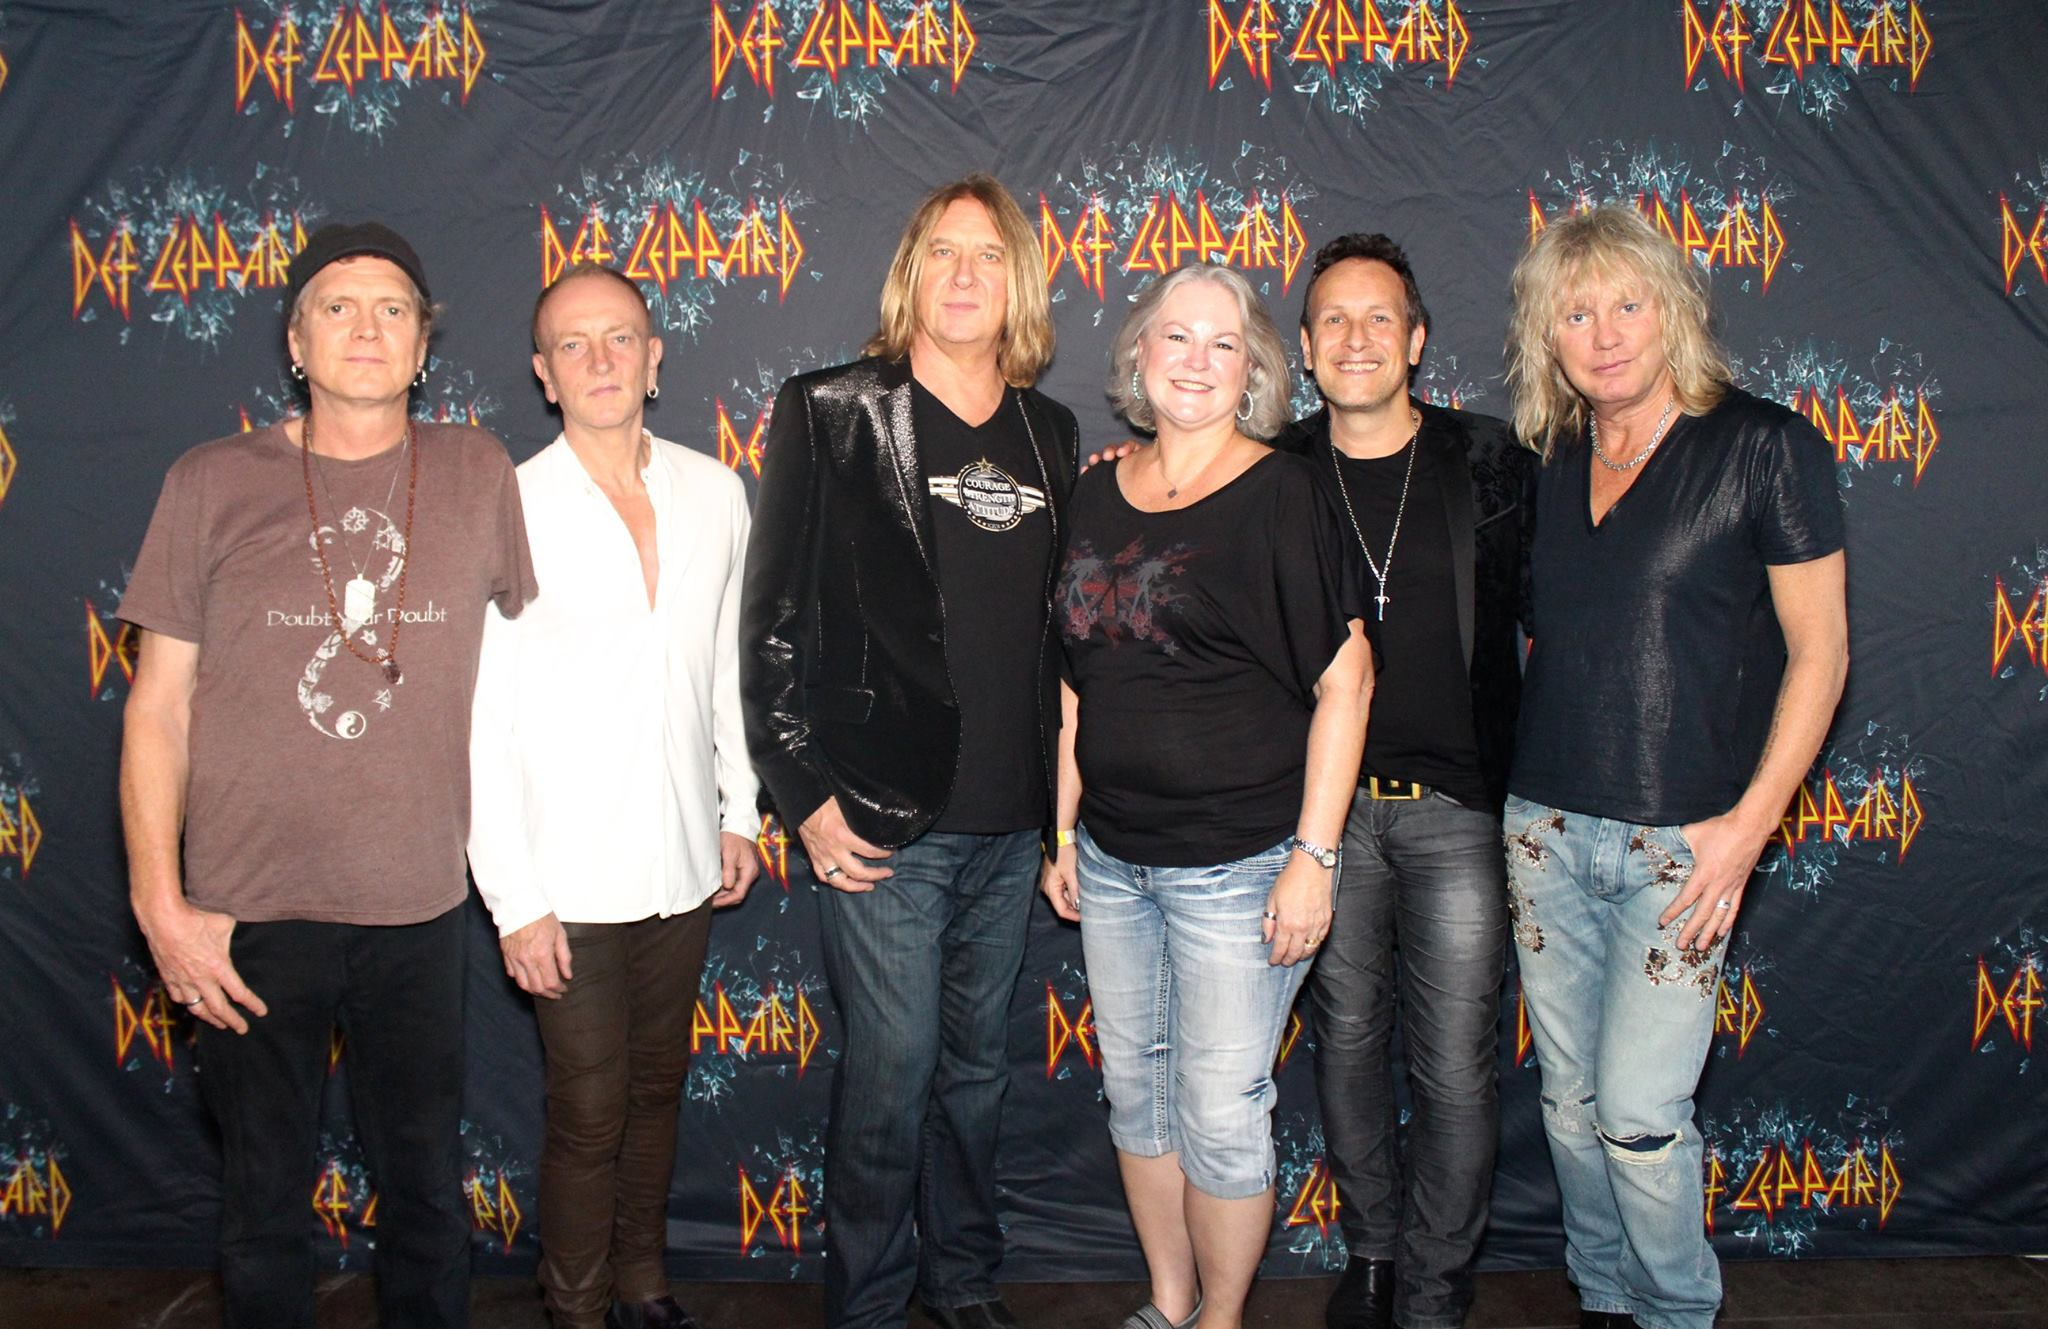 Def Leppard Meet Greets With Icjuk Designs